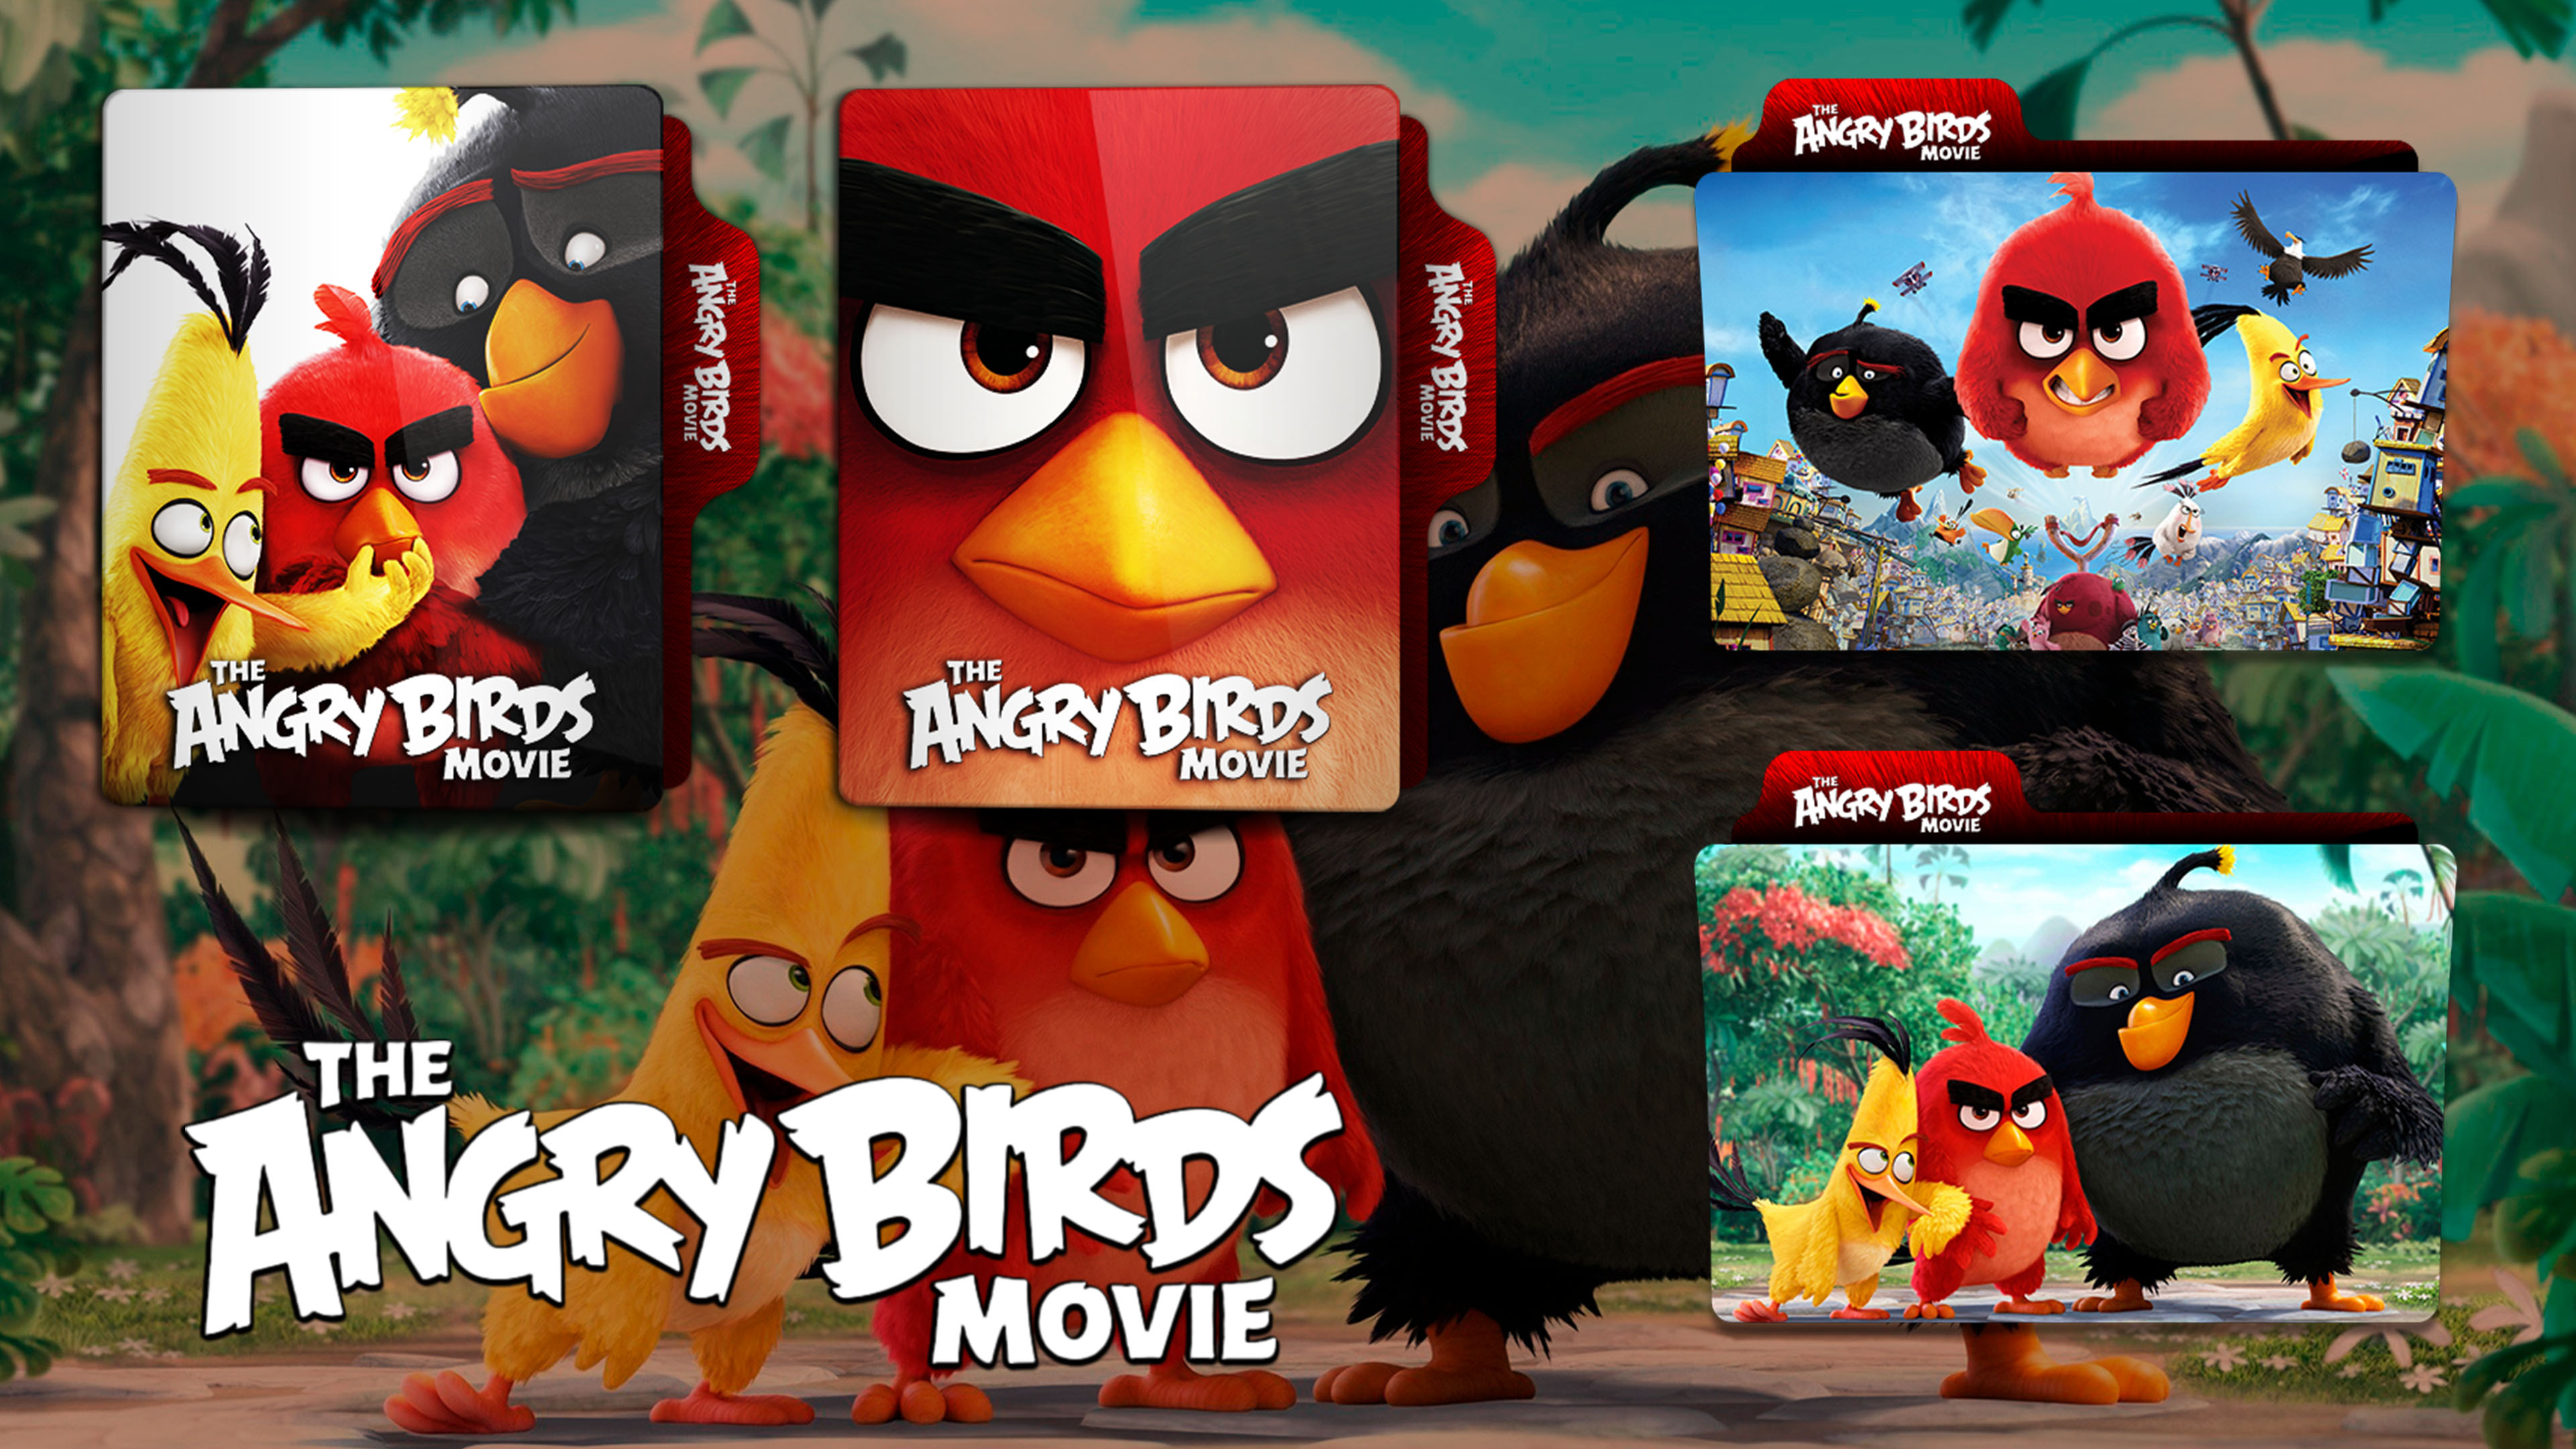 The Angry Birds Movie 2016 Folder Icon By Hns Rock On Deviantart